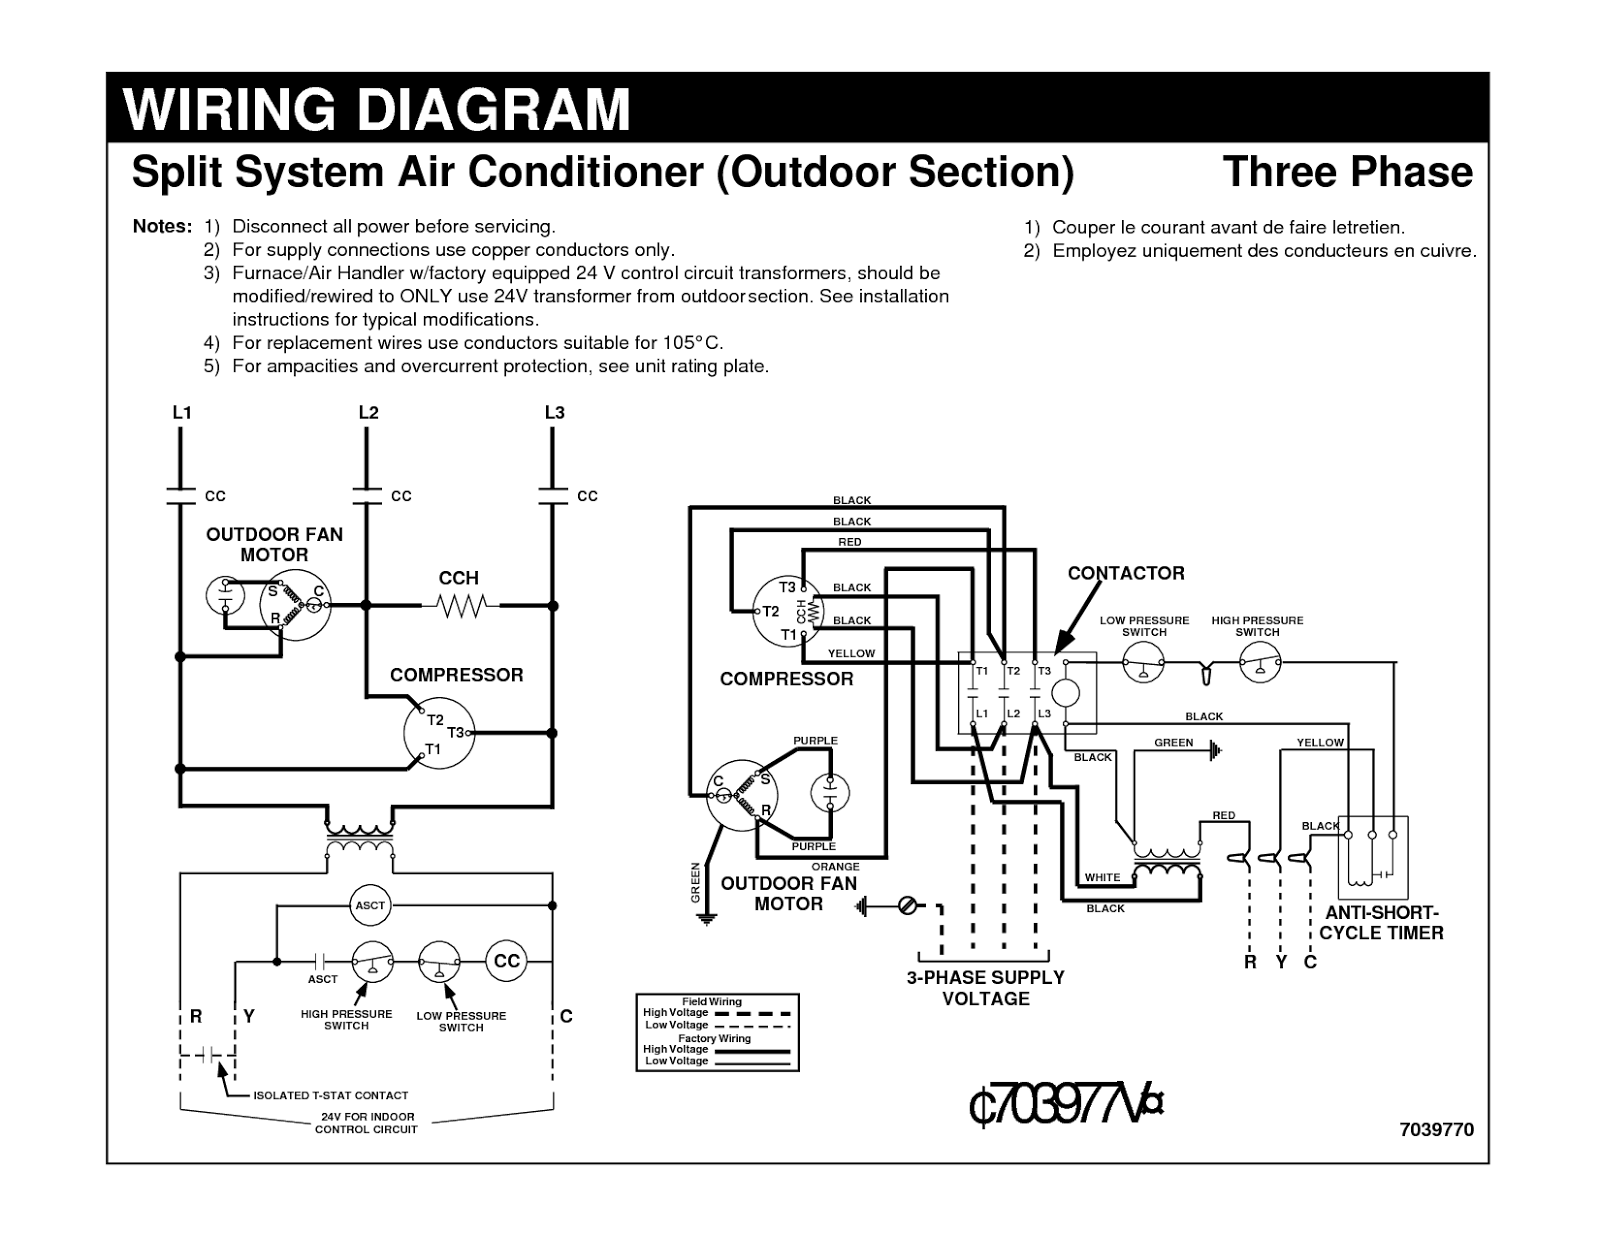 hvac wire diagram wiring diagram rh gregmadison co home hvac wiring diagram hvac wire diagram 07 gmc envoy denali